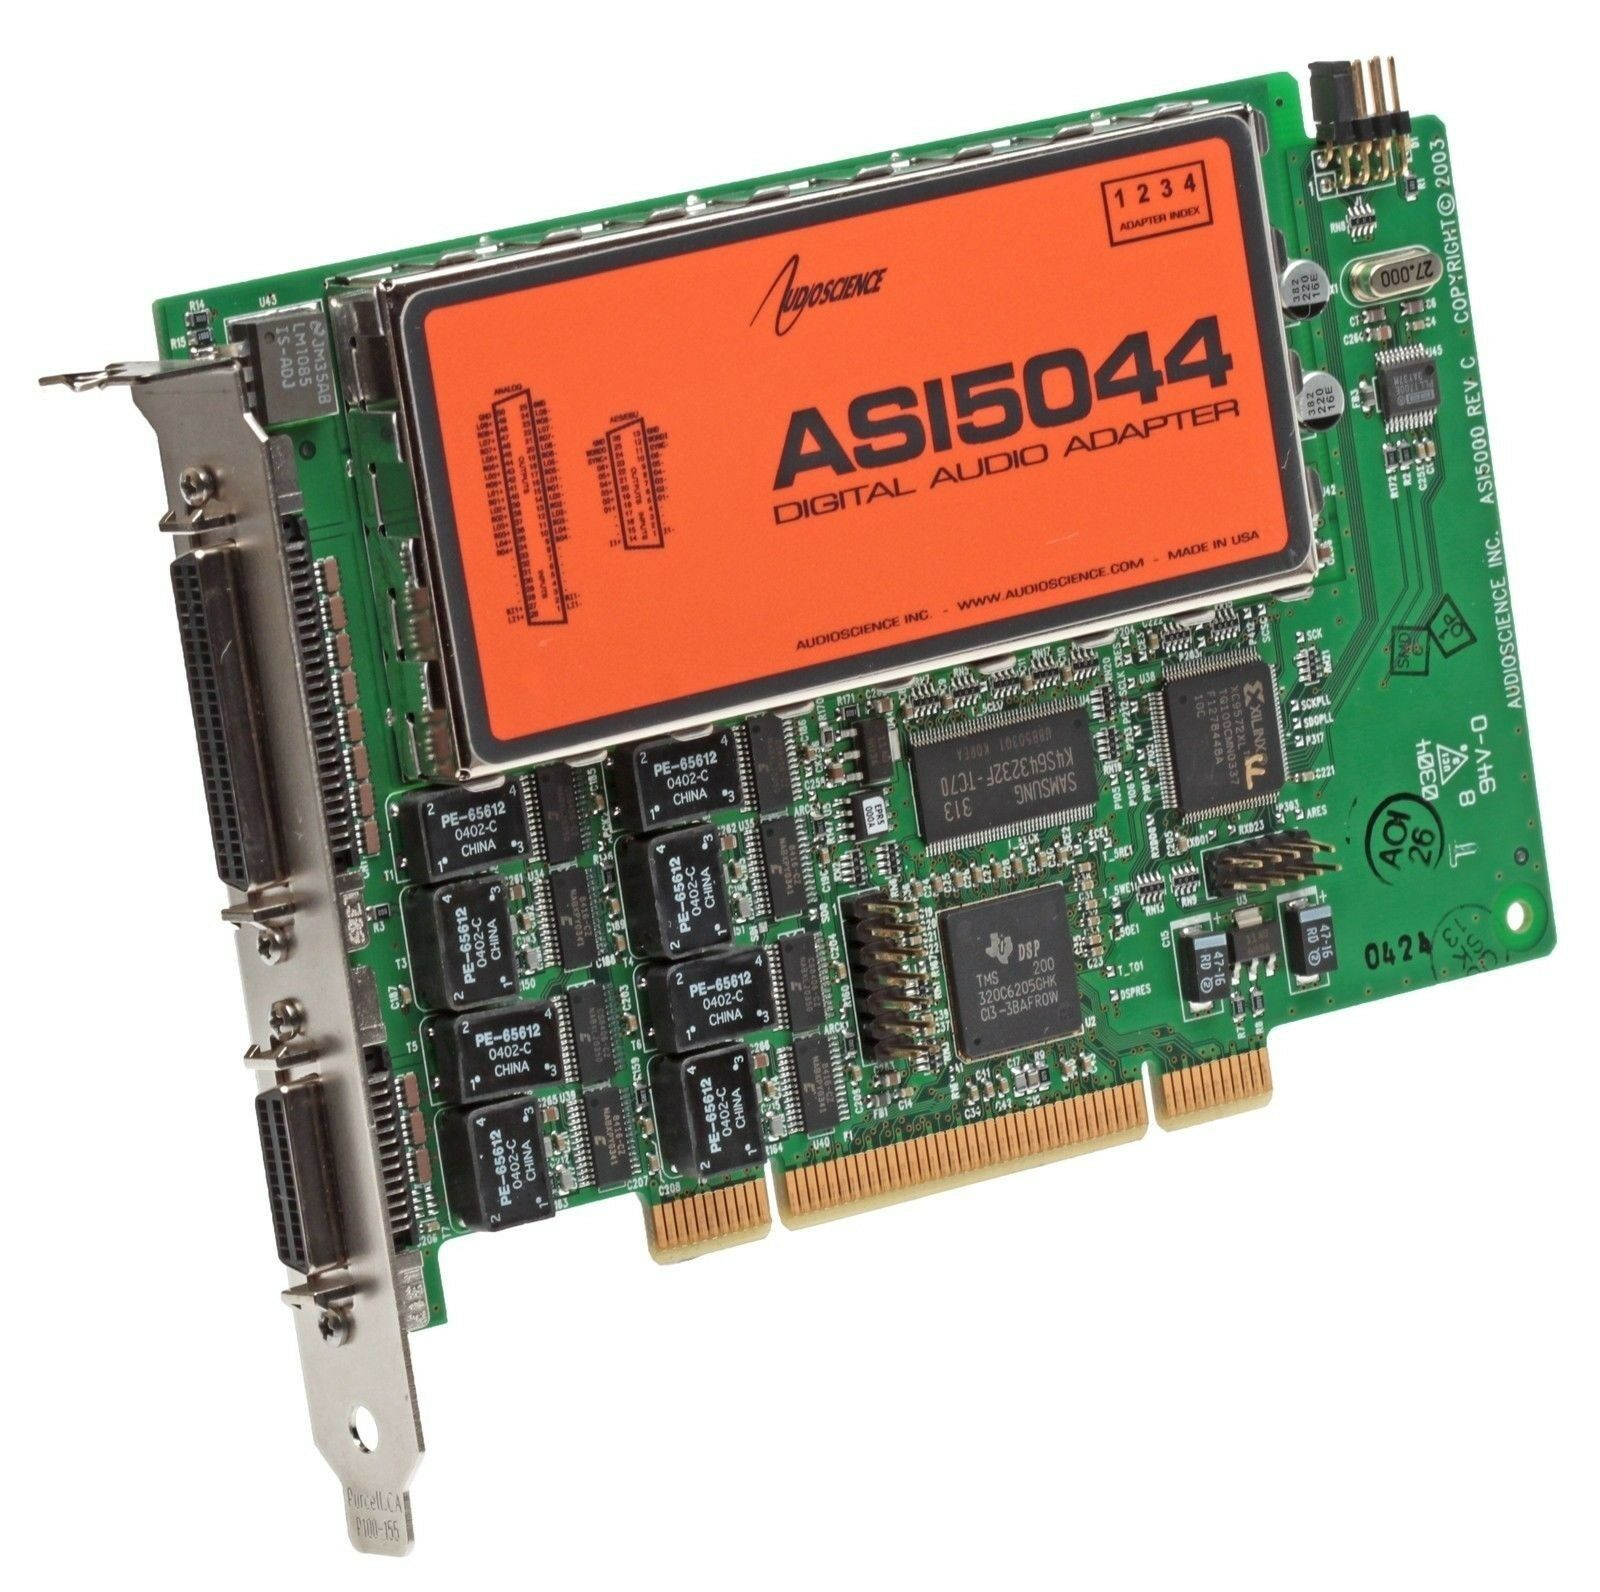 AudioScience ASI5044 AES Digital Audio Broadcast Sound Card w/ Balanced Analog [Refurbished]-www.prostudioconnection.com